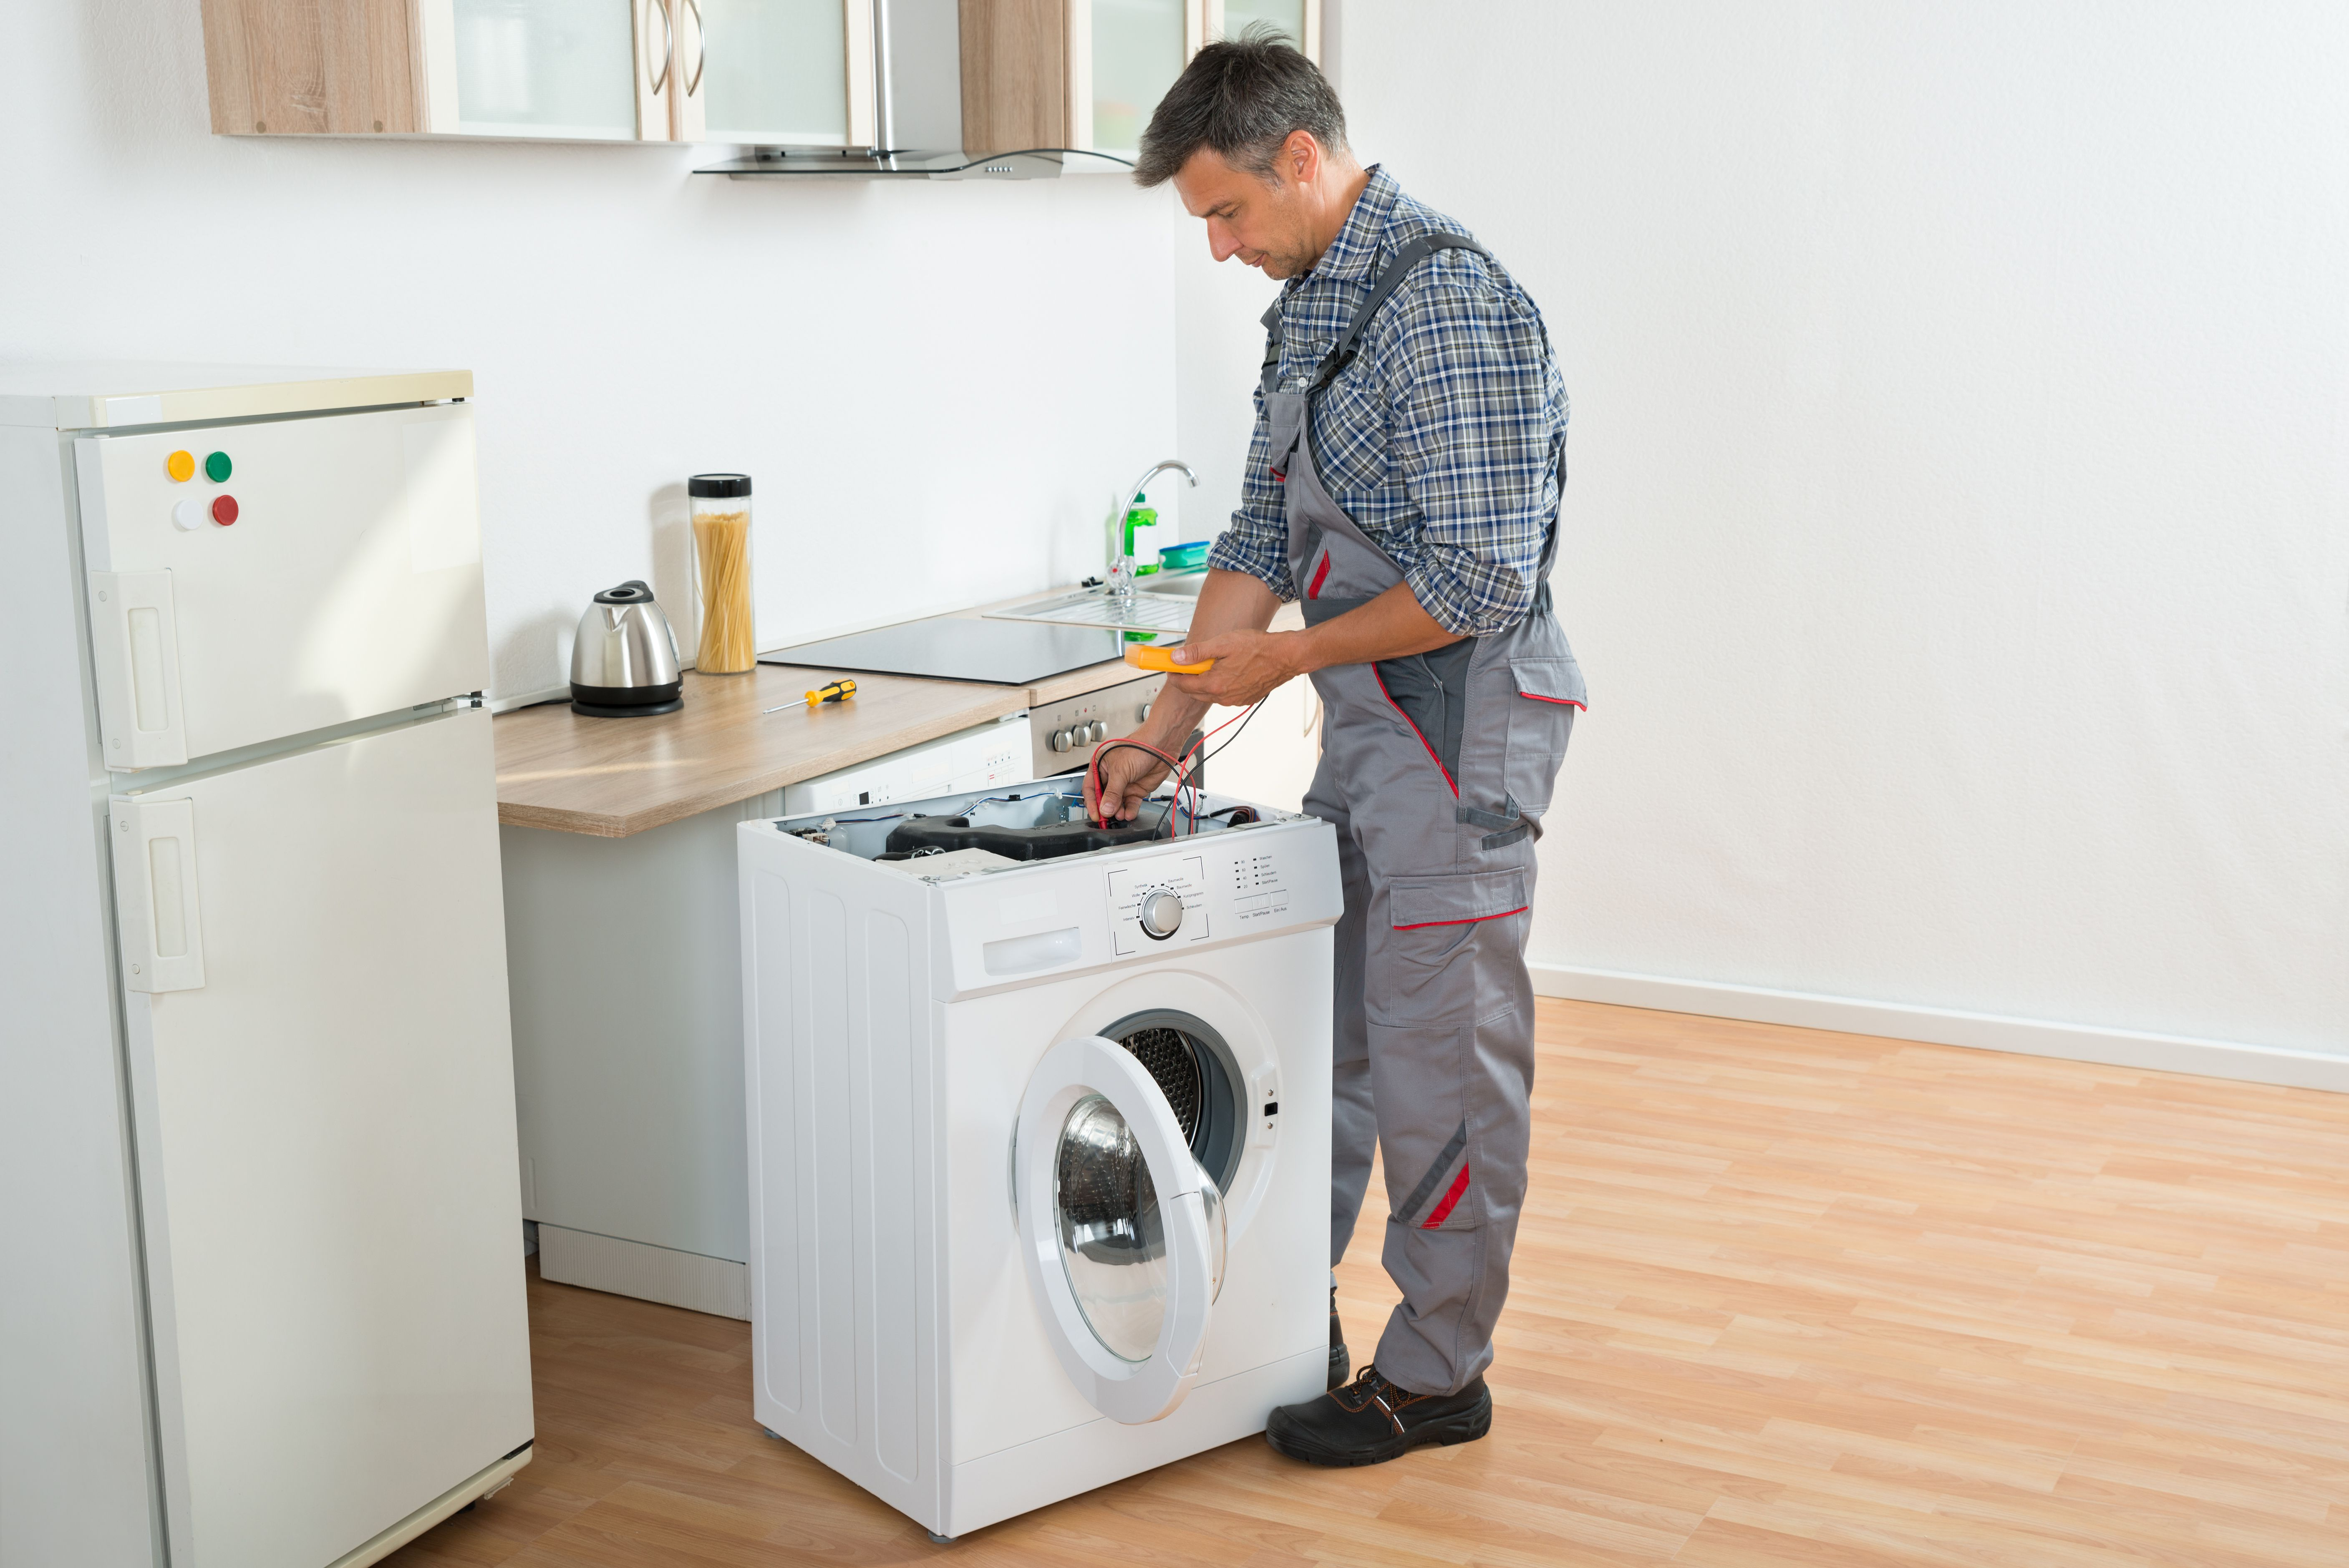 How To Disconnect And Move A Clothes Washer Installing Dryer Outlet In Laundry Room4wiredryerjpg